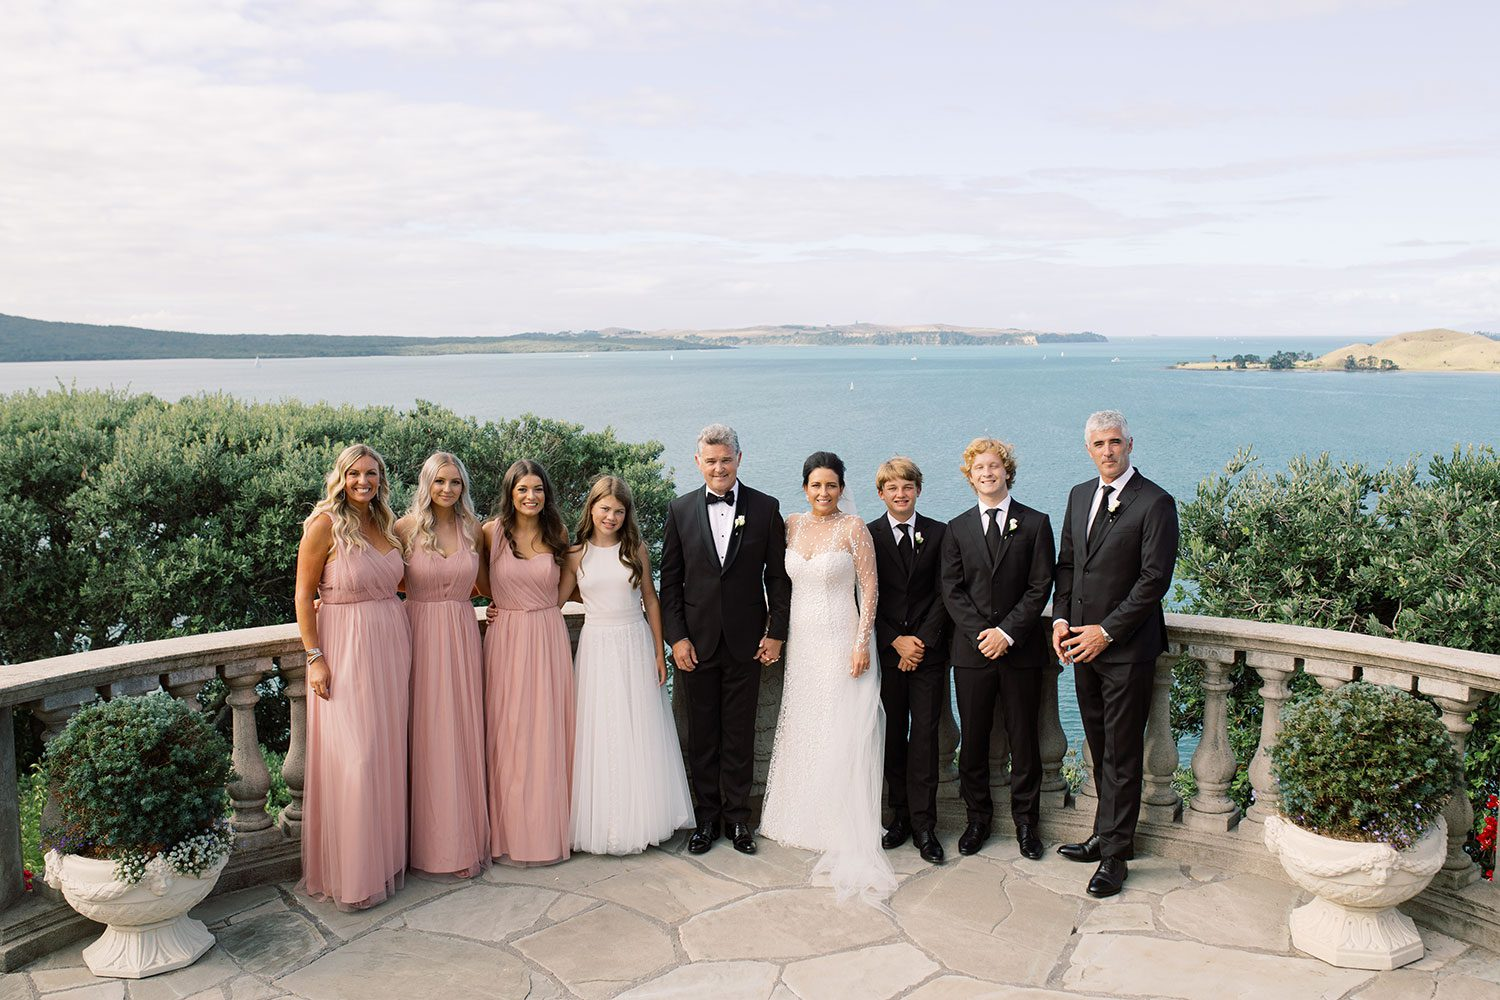 Bride wearing bespoke gown by Auckland wedding dress designer Vinka Design, with a high neckline and delicate spotted embroidery - bridal party